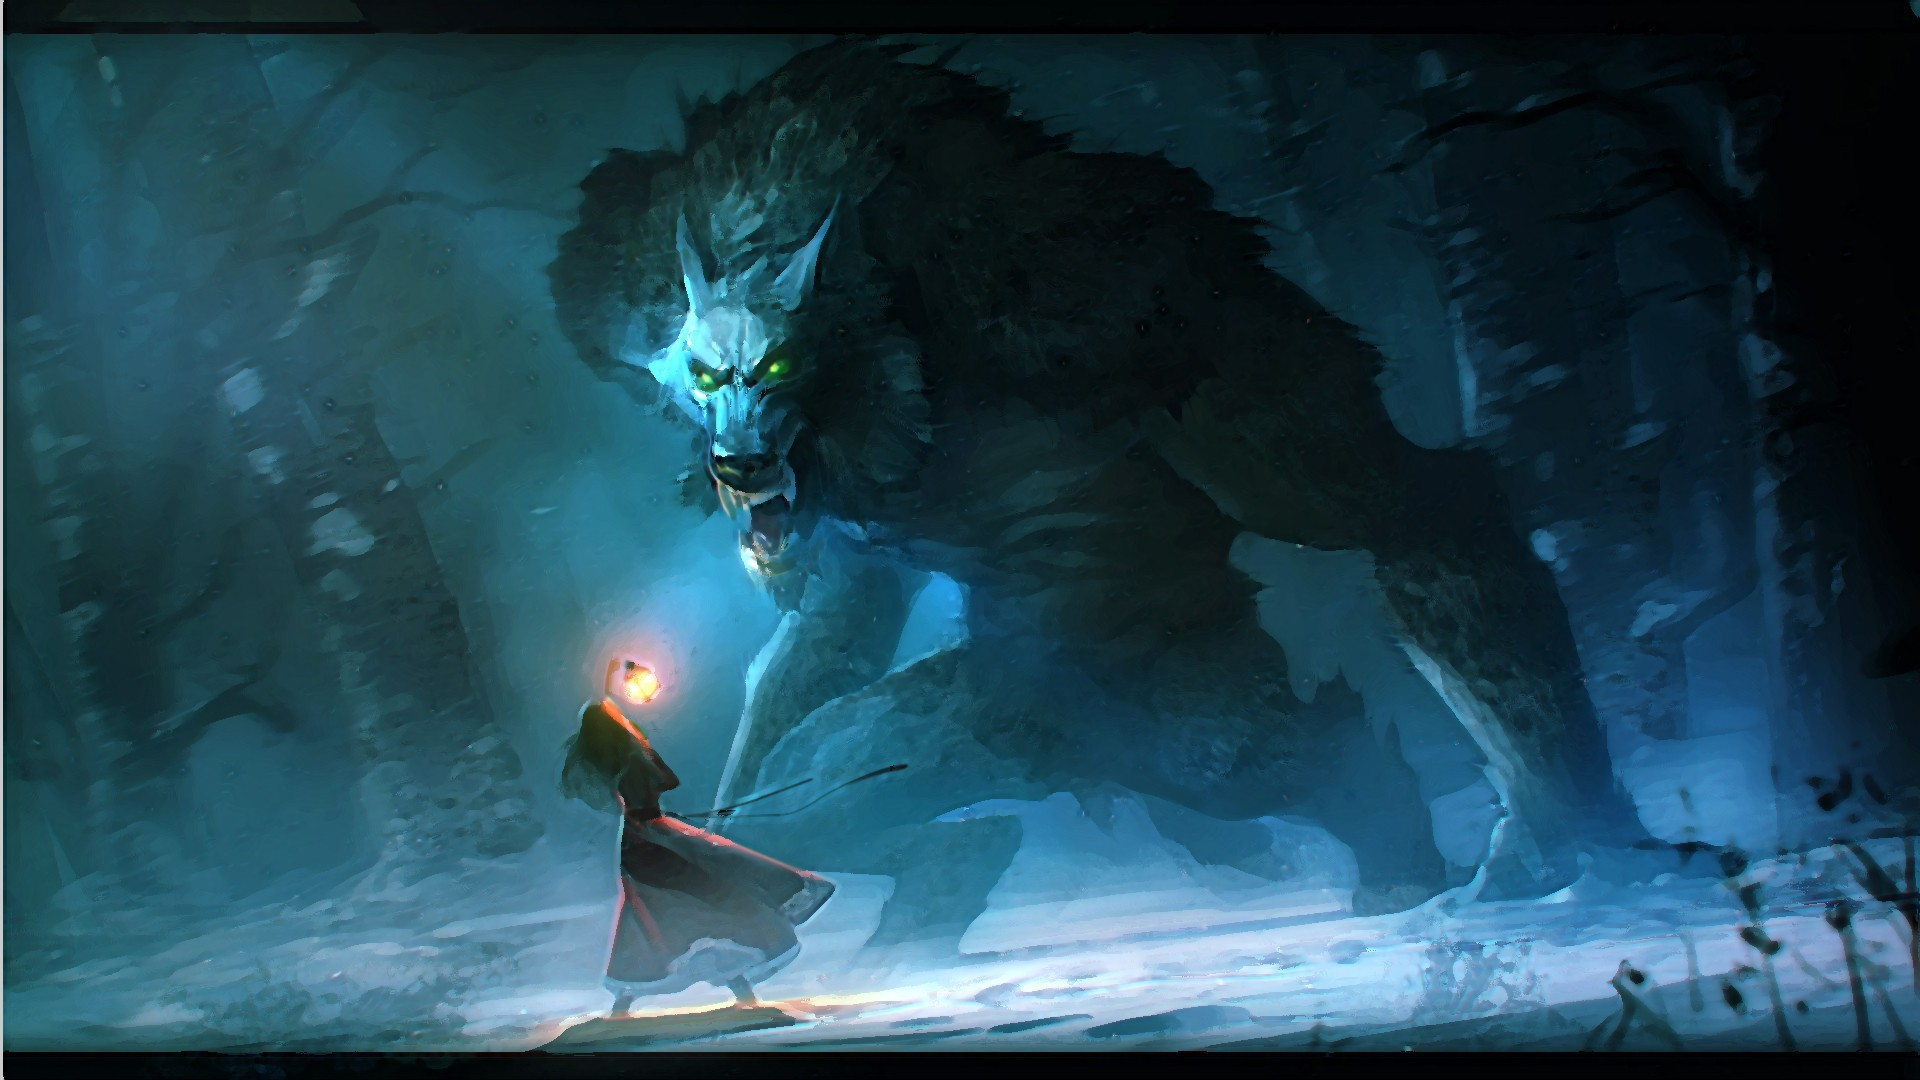 Wolf Fantasy Wallpapers (37 Wallpapers)